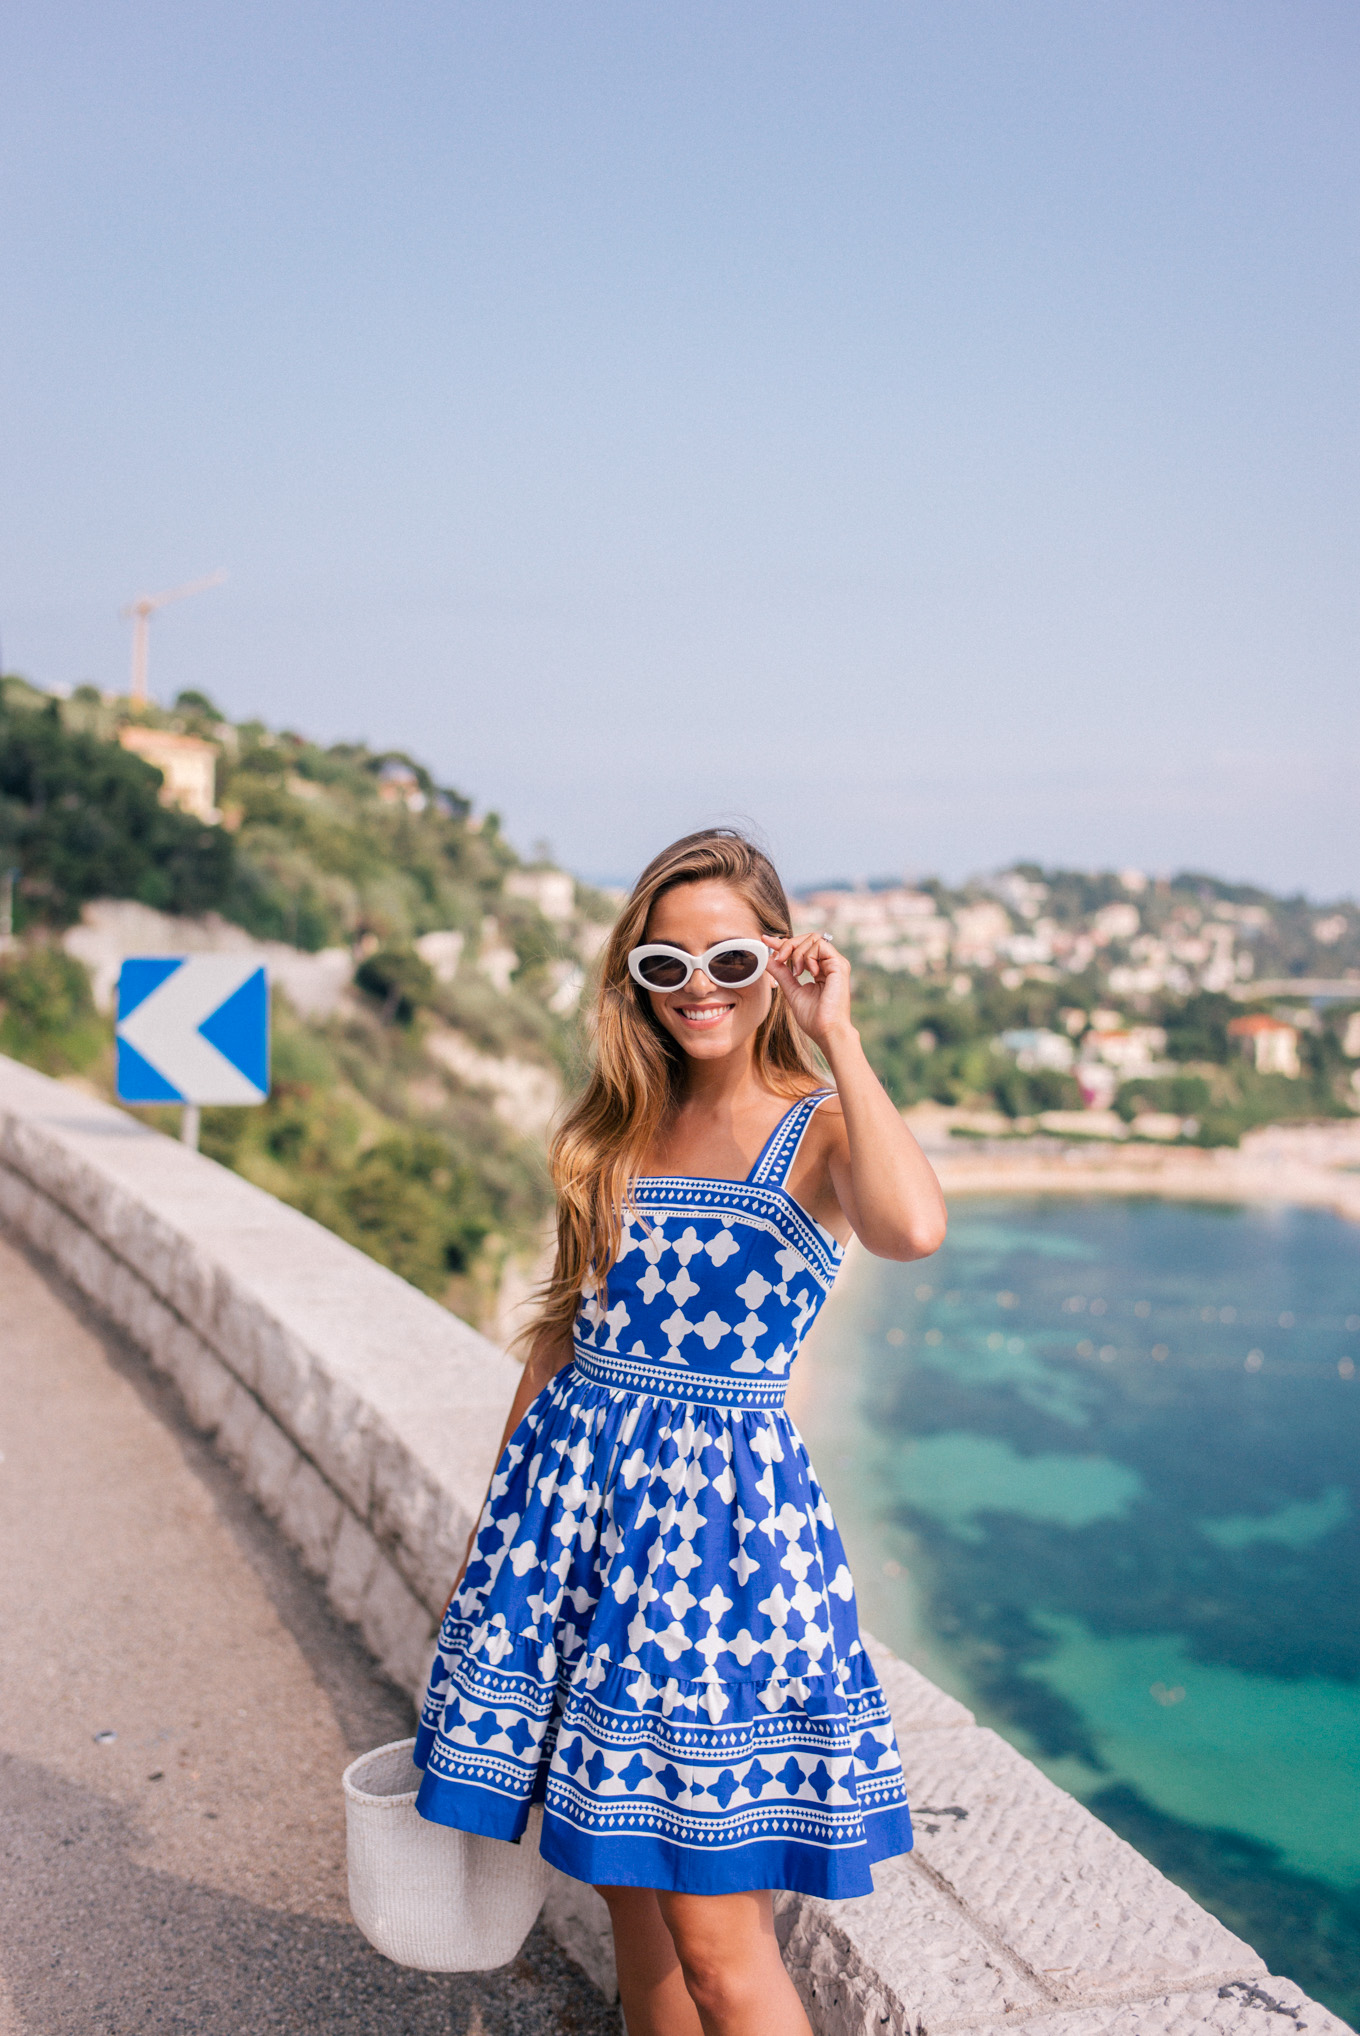 gmg-blue-and-white-nice-france-1007535